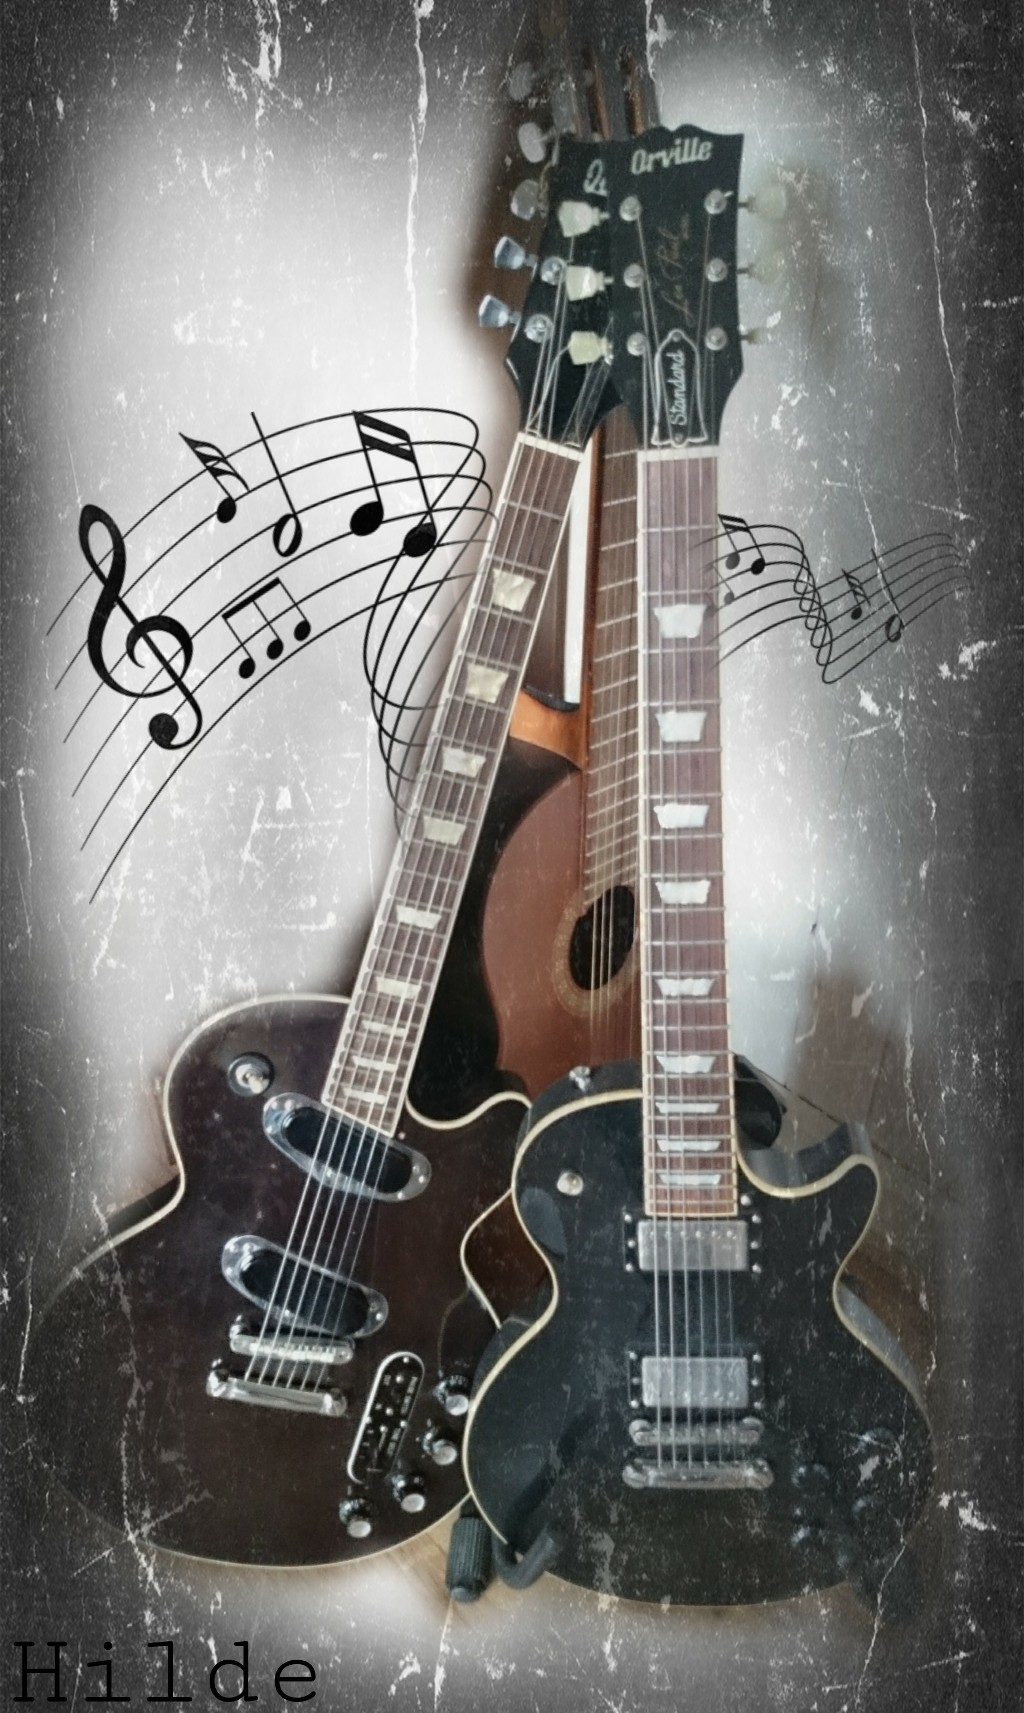 Guitar clipart for picsart picture royalty free music guitar clipart - Image by Hilde picture royalty free